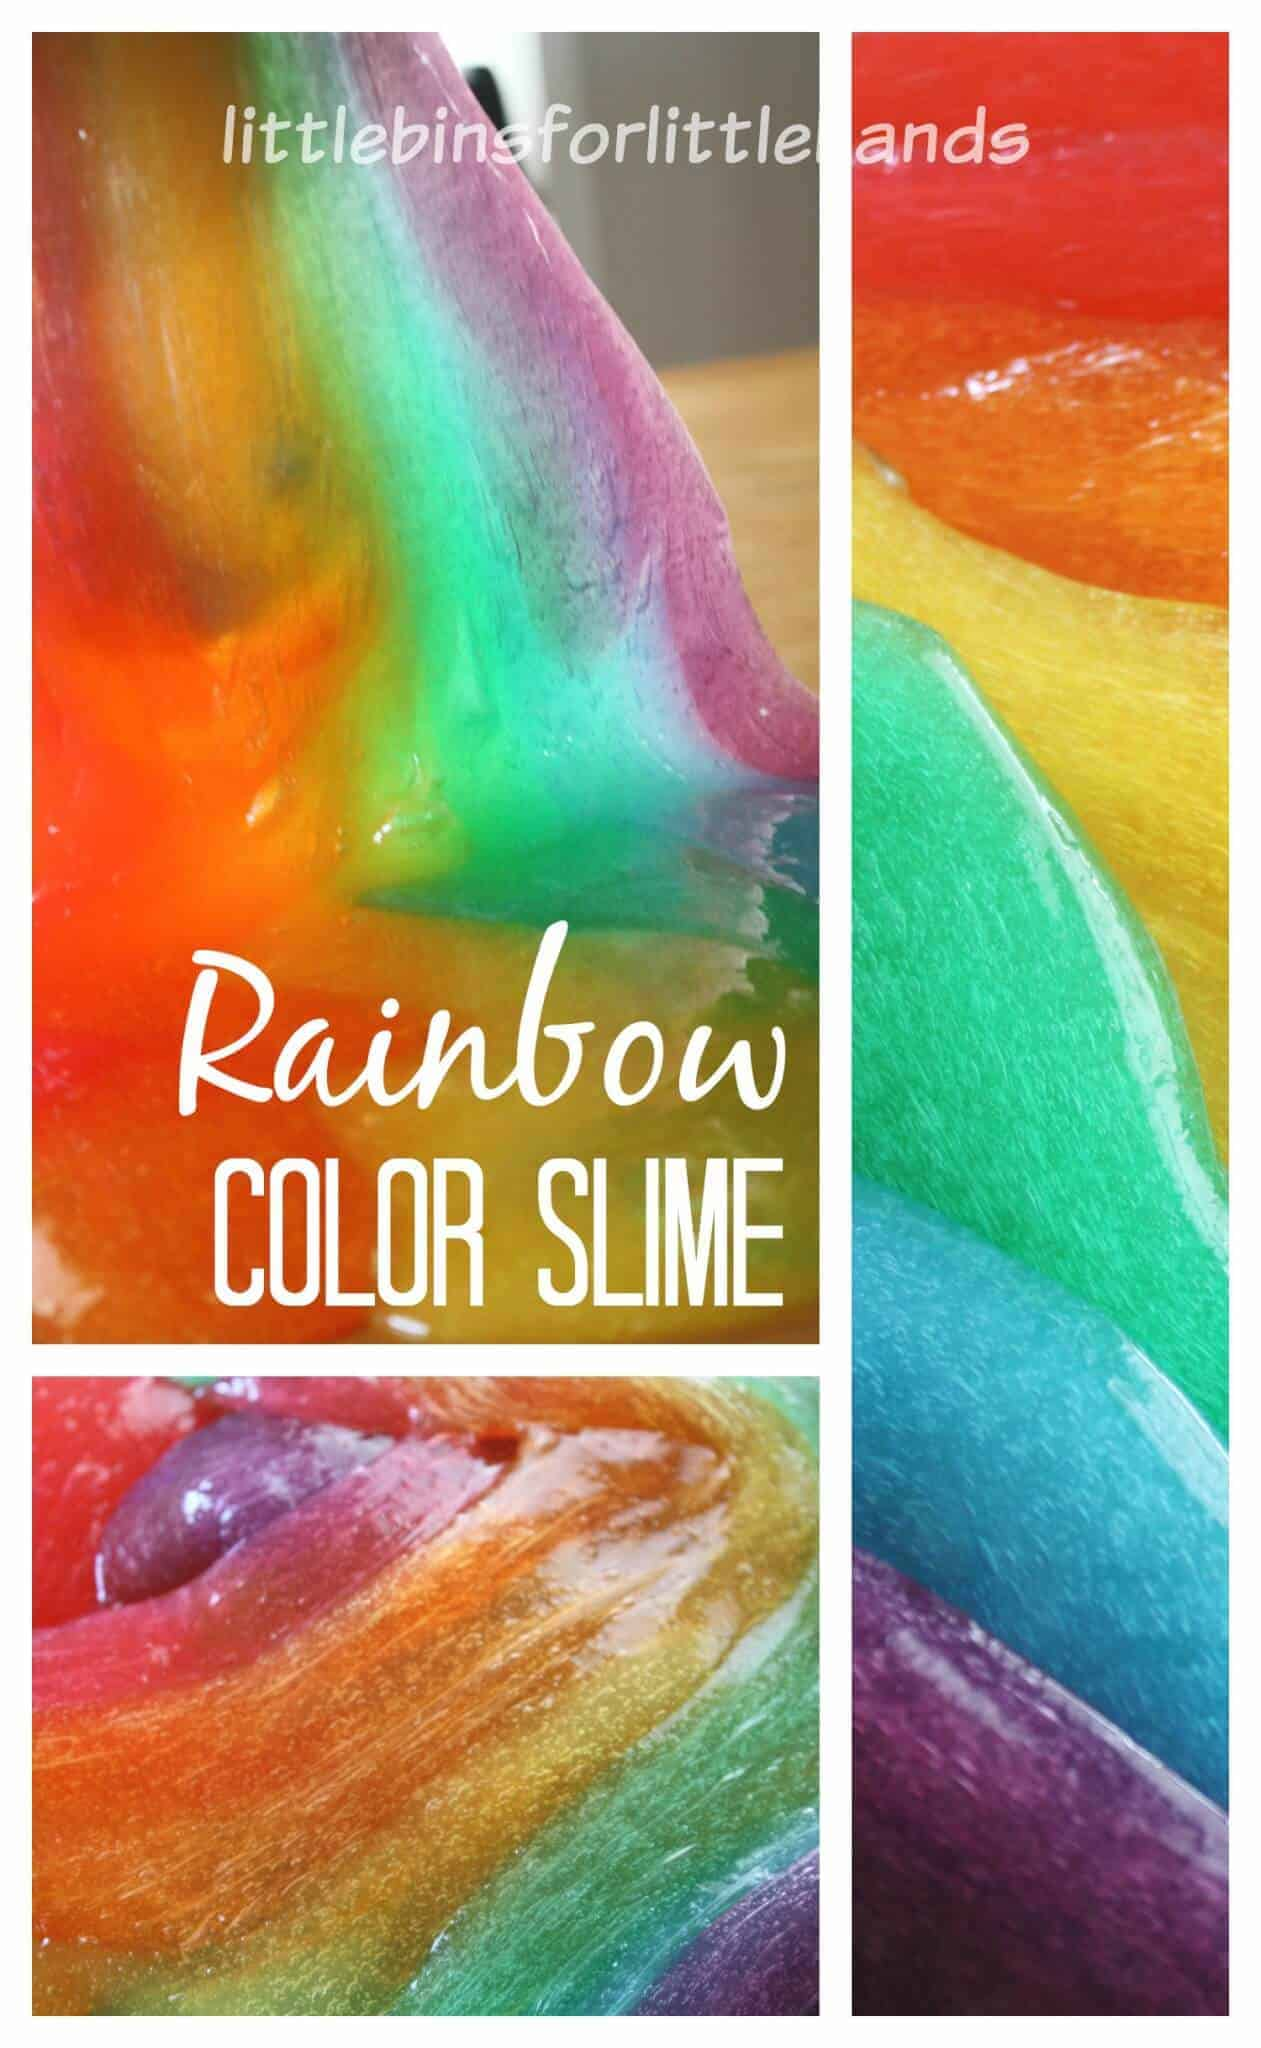 How To Color Slime Without Food Coloring : color, slime, without, coloring, Colorful, Rainbow, Slime, Little, Hands